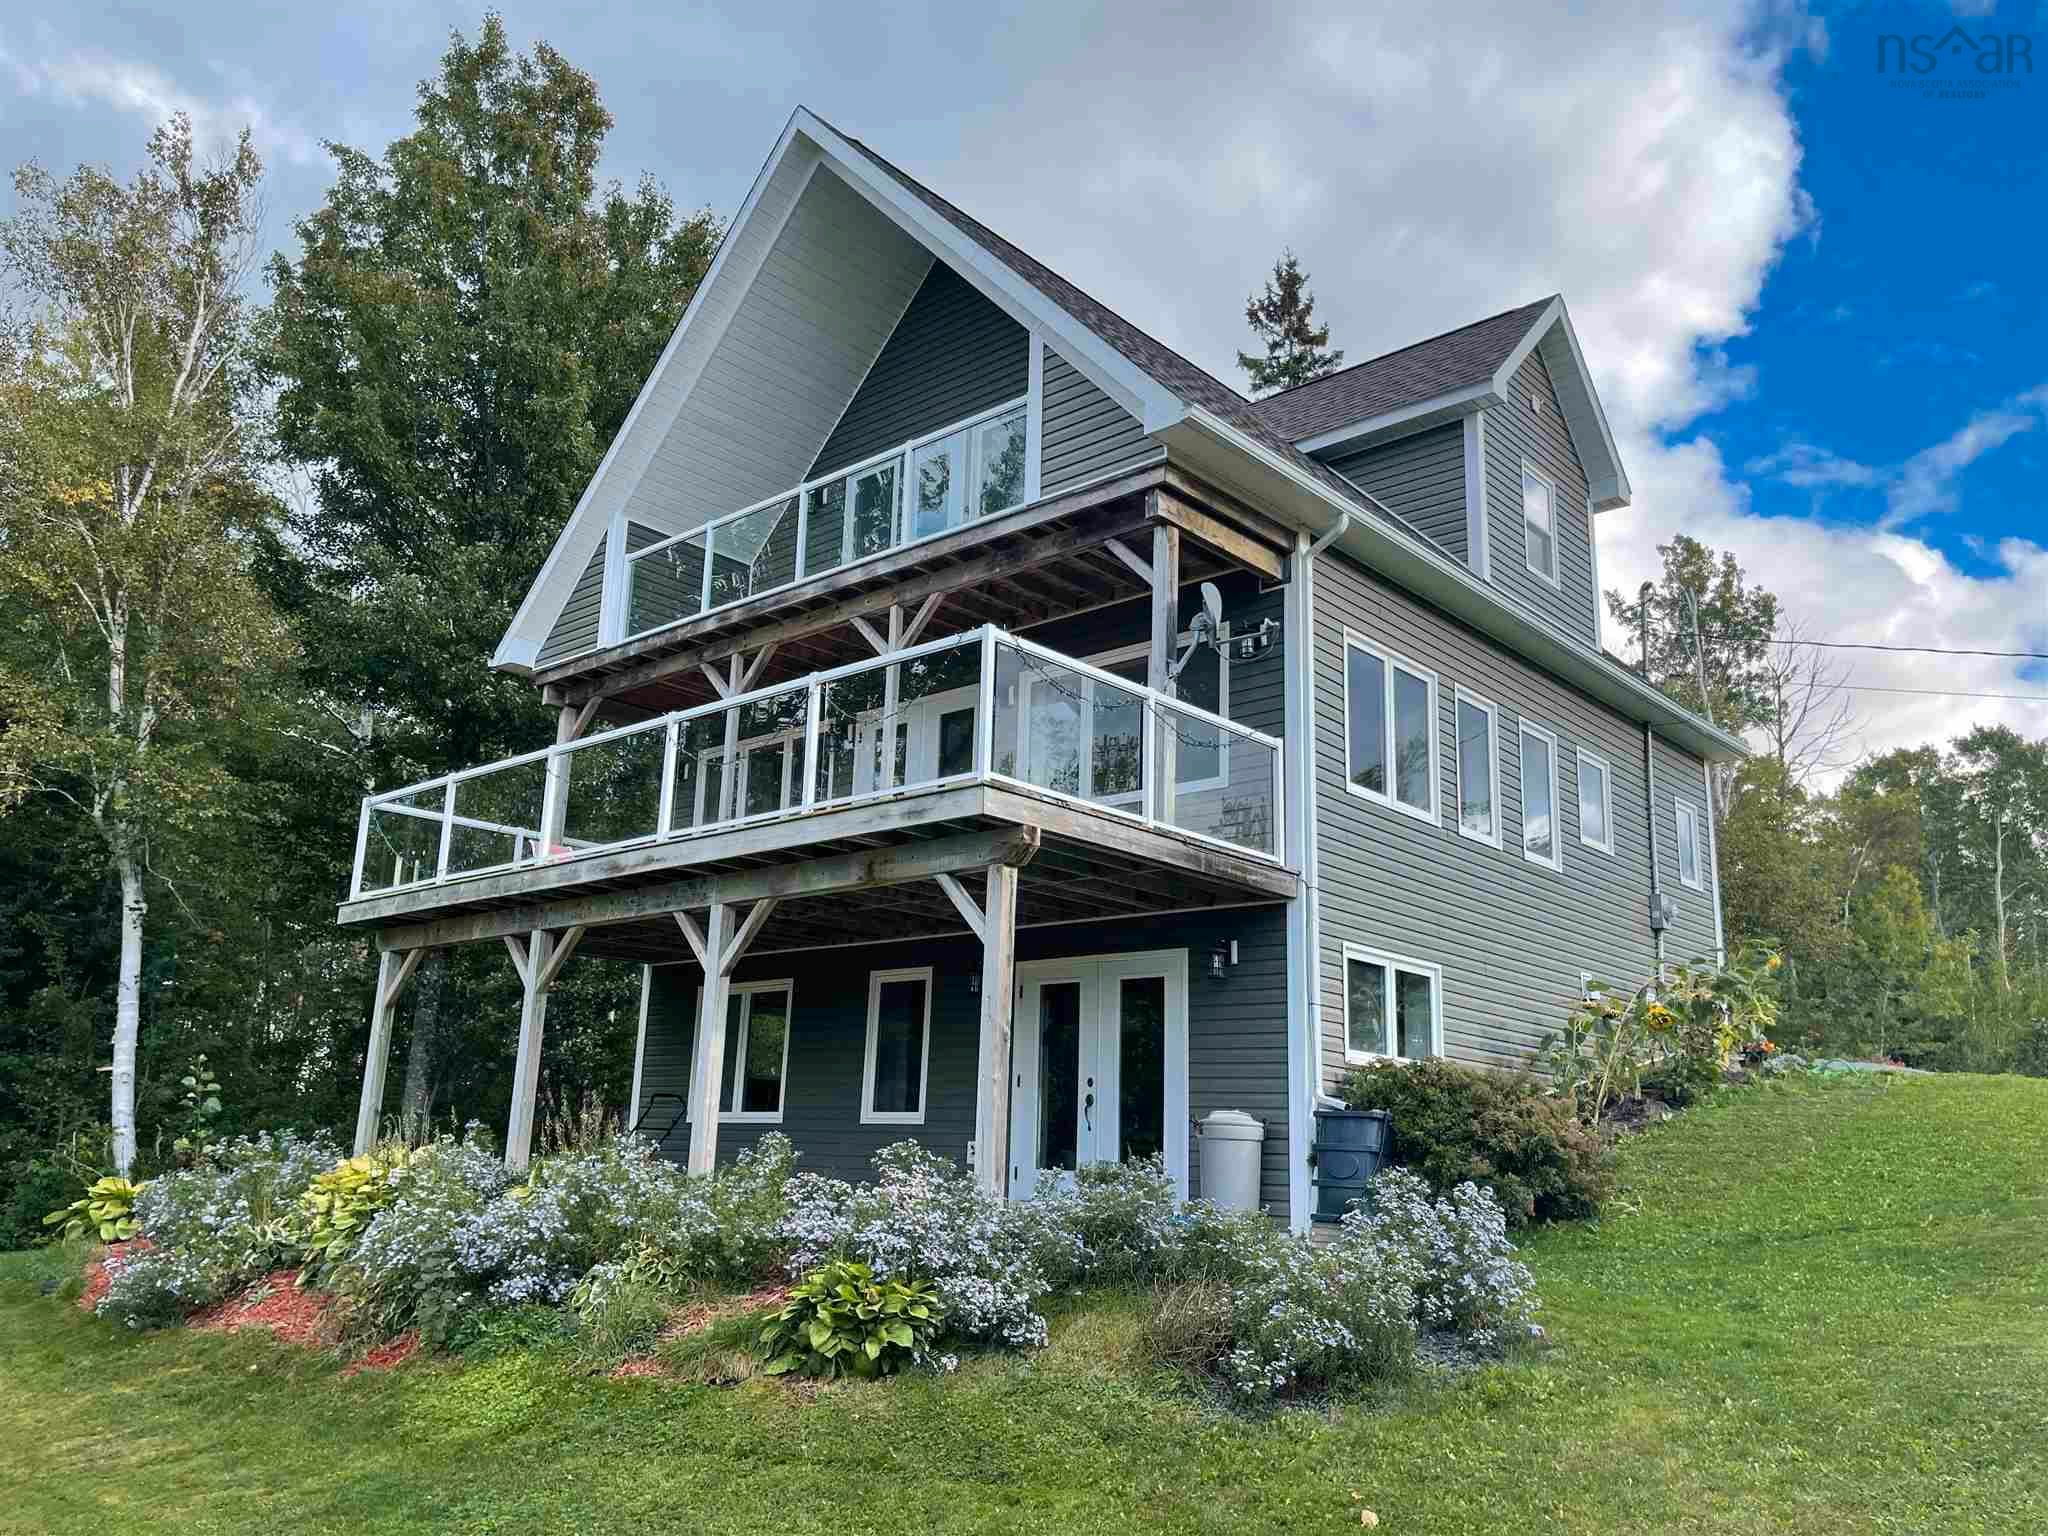 Main Photo: 163 MacNeil Point Road in Little Harbour: 108-Rural Pictou County Residential for sale (Northern Region)  : MLS®# 202125566